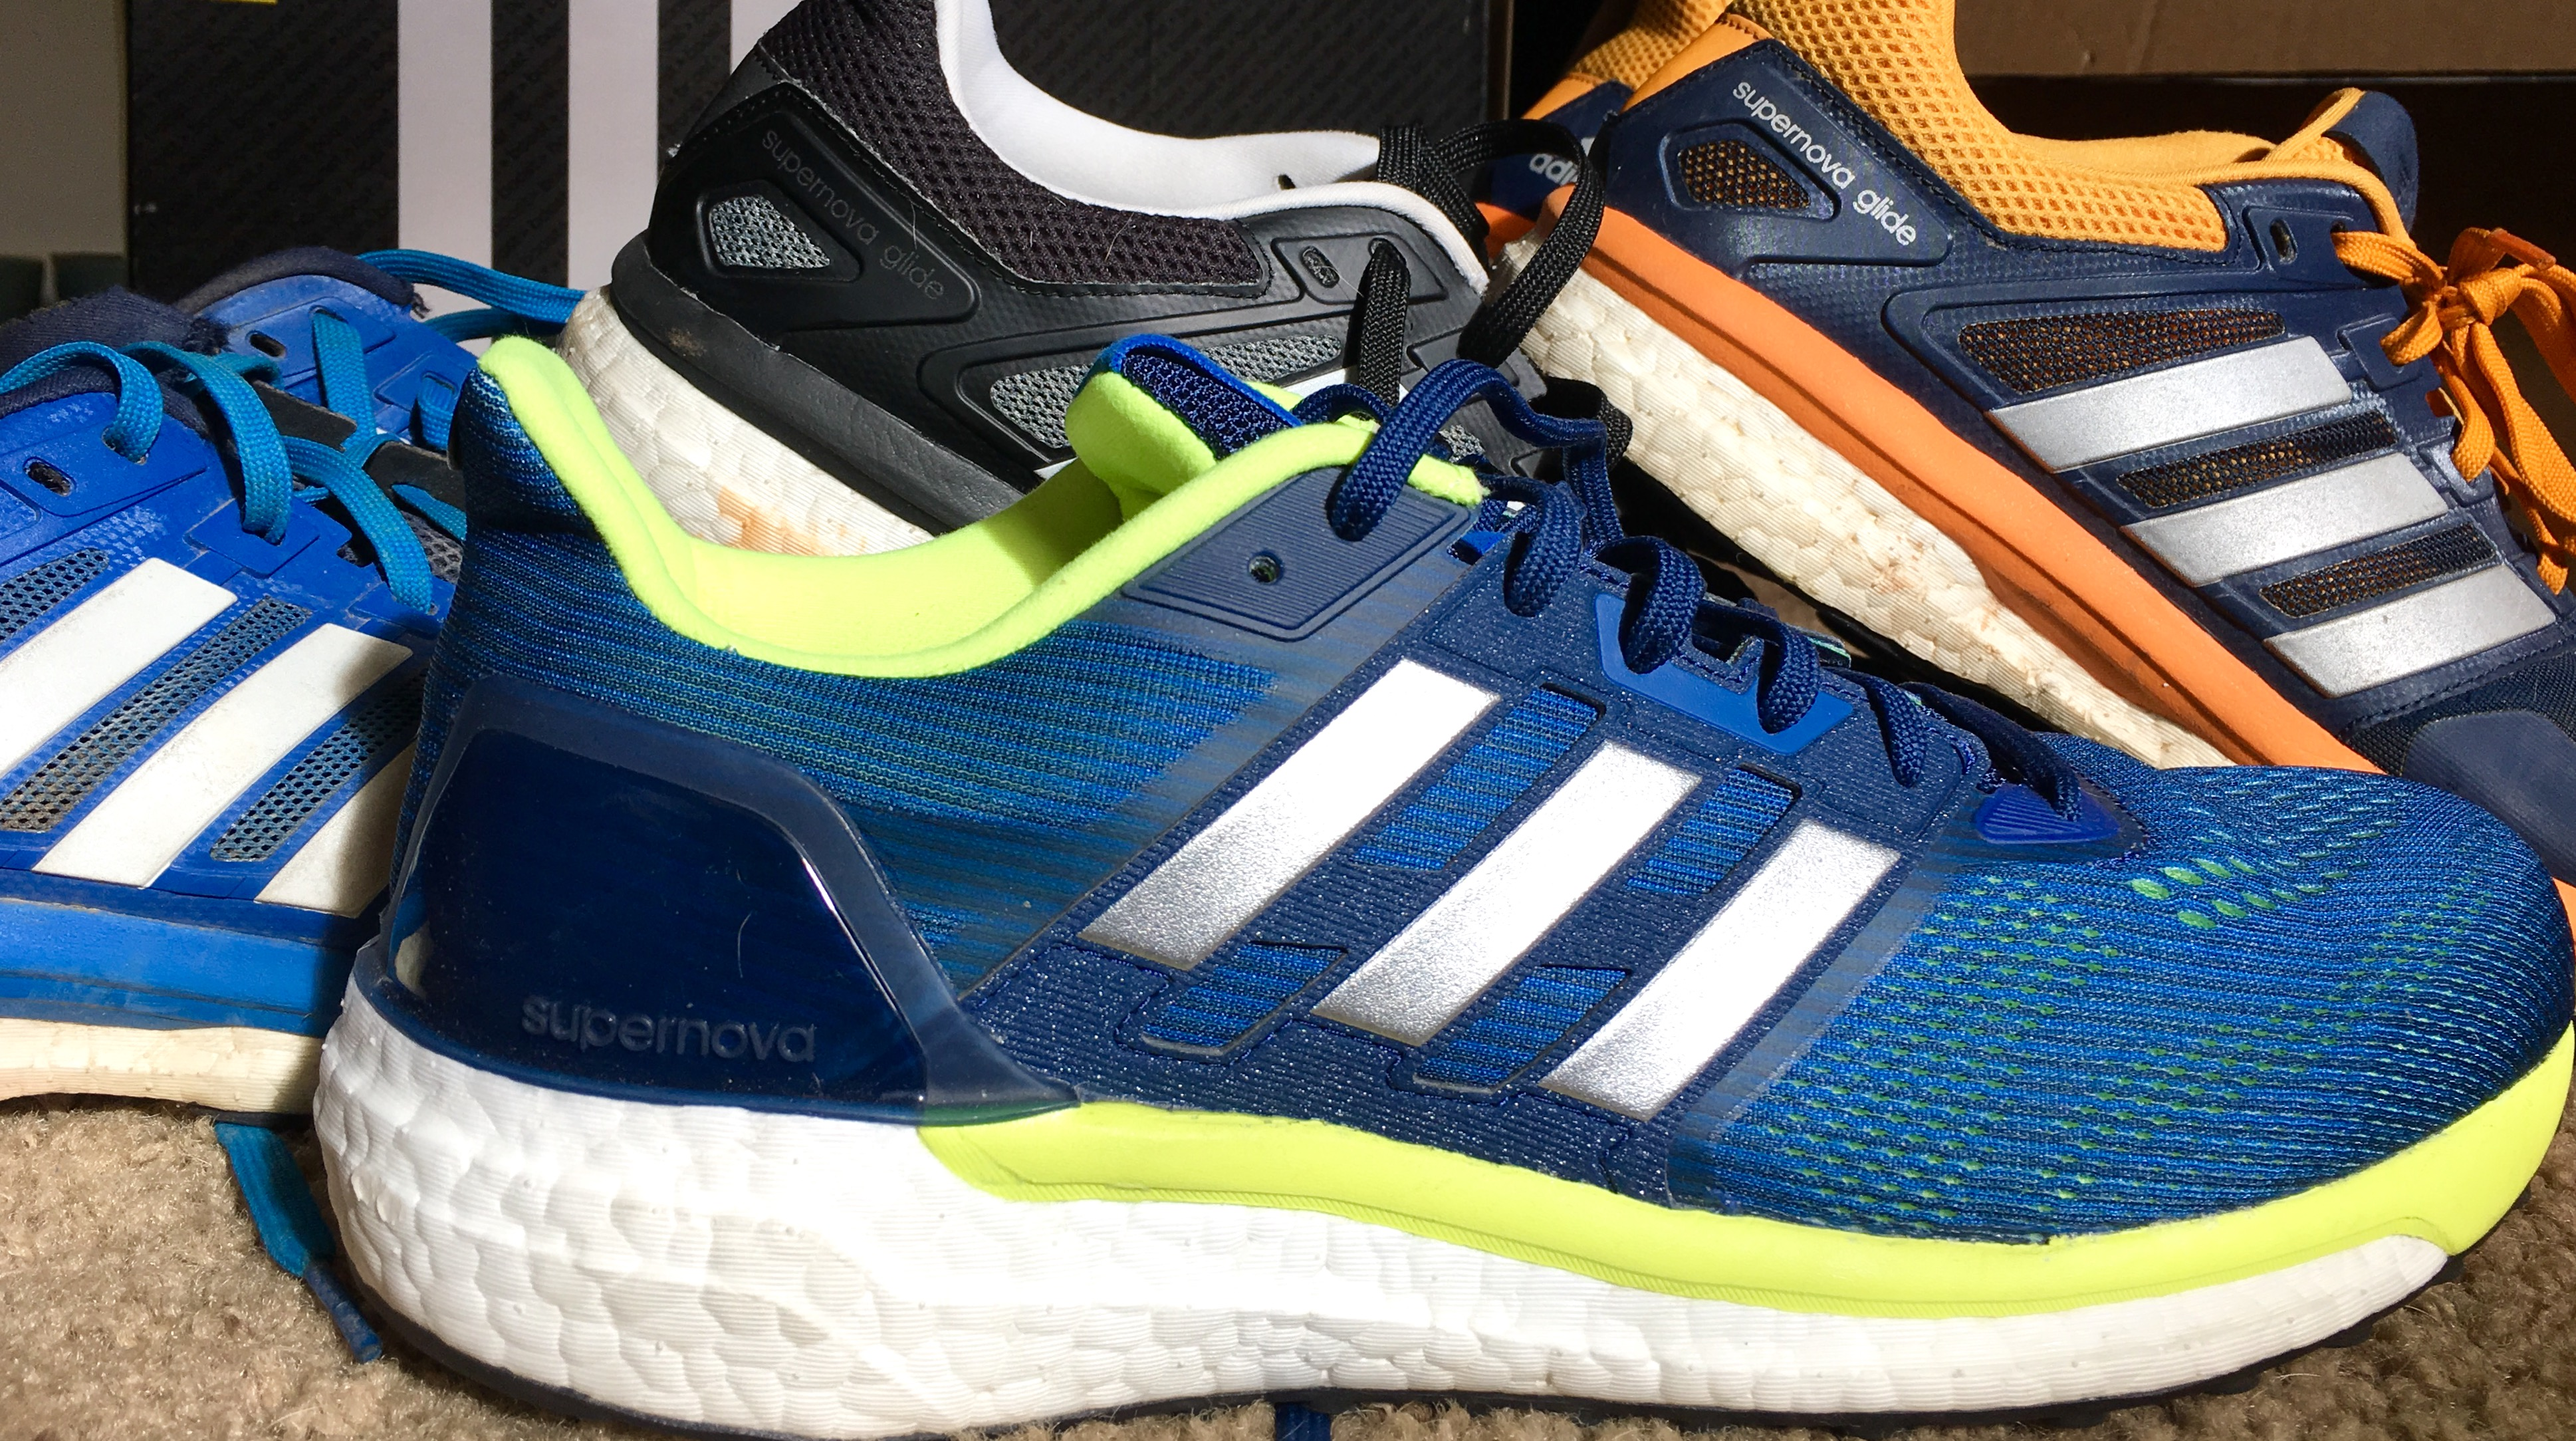 Adidas Supernova review the agony of a running shoe update